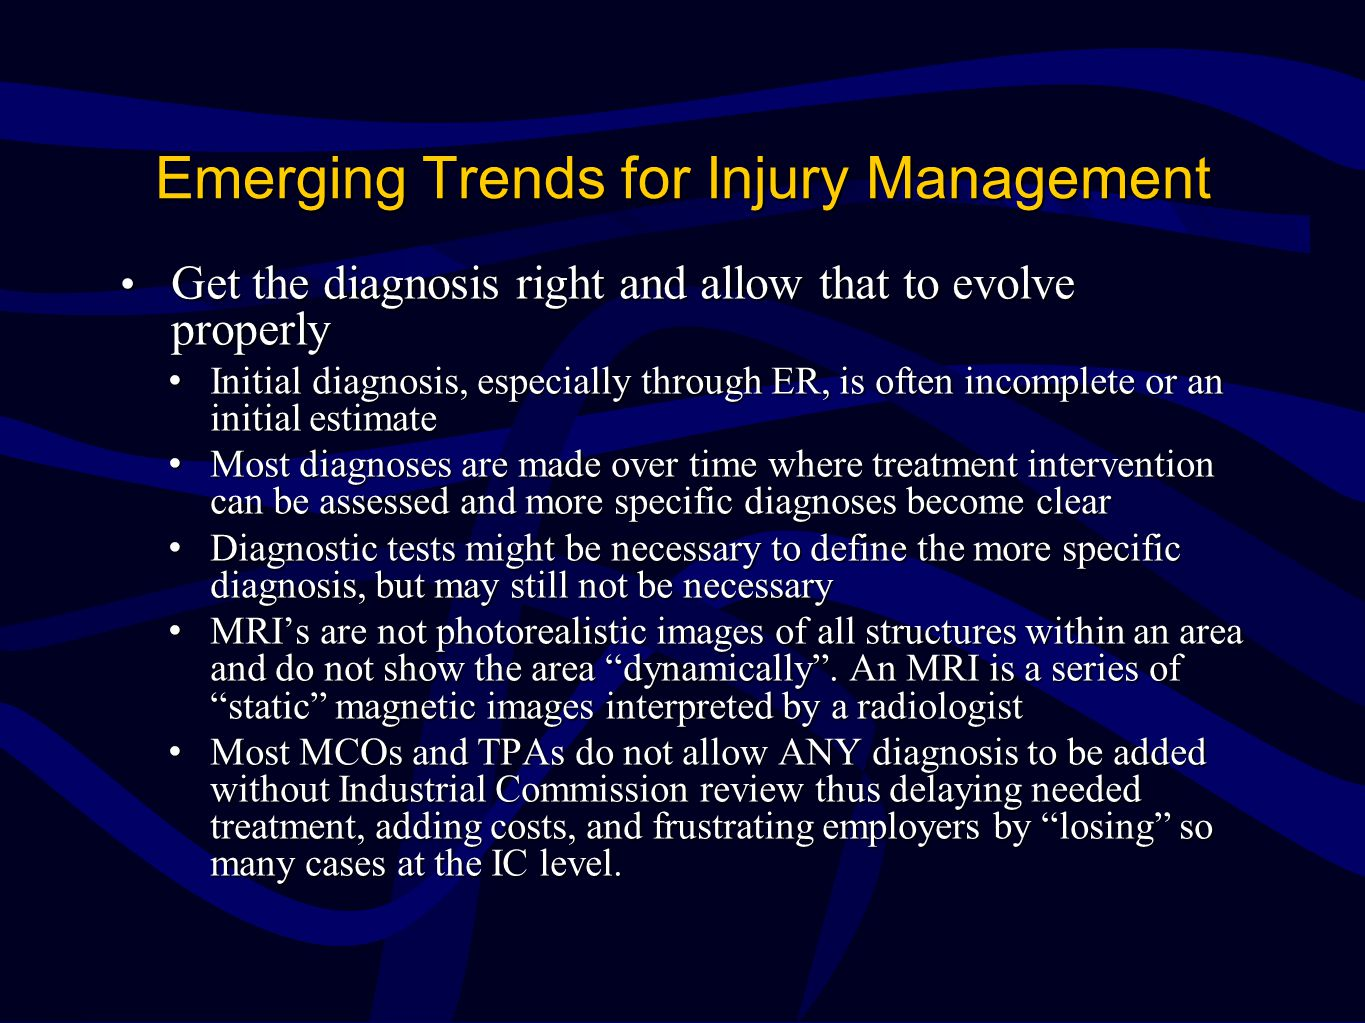 Emerging Trends for Injury Management Get the diagnosis right and allow that to evolve properly Get the diagnosis right and allow that to evolve properly Initial diagnosis, especially through ER, is often incomplete or an initial estimateInitial diagnosis, especially through ER, is often incomplete or an initial estimate Most diagnoses are made over time where treatment intervention can be assessed and more specific diagnoses become clearMost diagnoses are made over time where treatment intervention can be assessed and more specific diagnoses become clear Diagnostic tests might be necessary to define the more specific diagnosis, but may still not be necessaryDiagnostic tests might be necessary to define the more specific diagnosis, but may still not be necessary MRI's are not photorealistic images of all structures within an area and do not show the area dynamically .